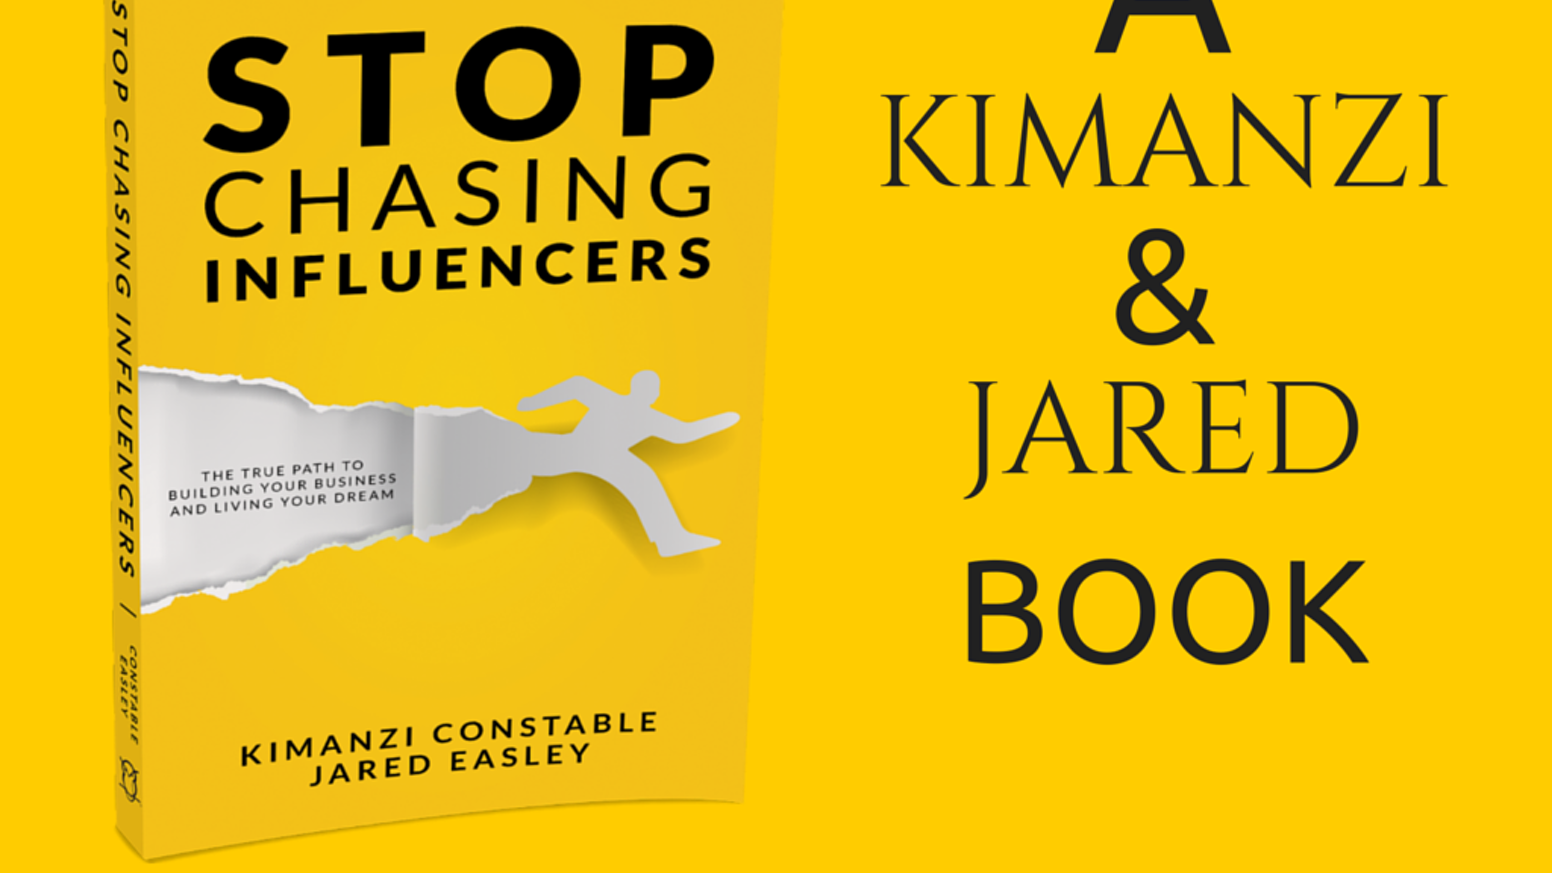 Stop Chasing Influencers: A Kimanzi and Jared book  by